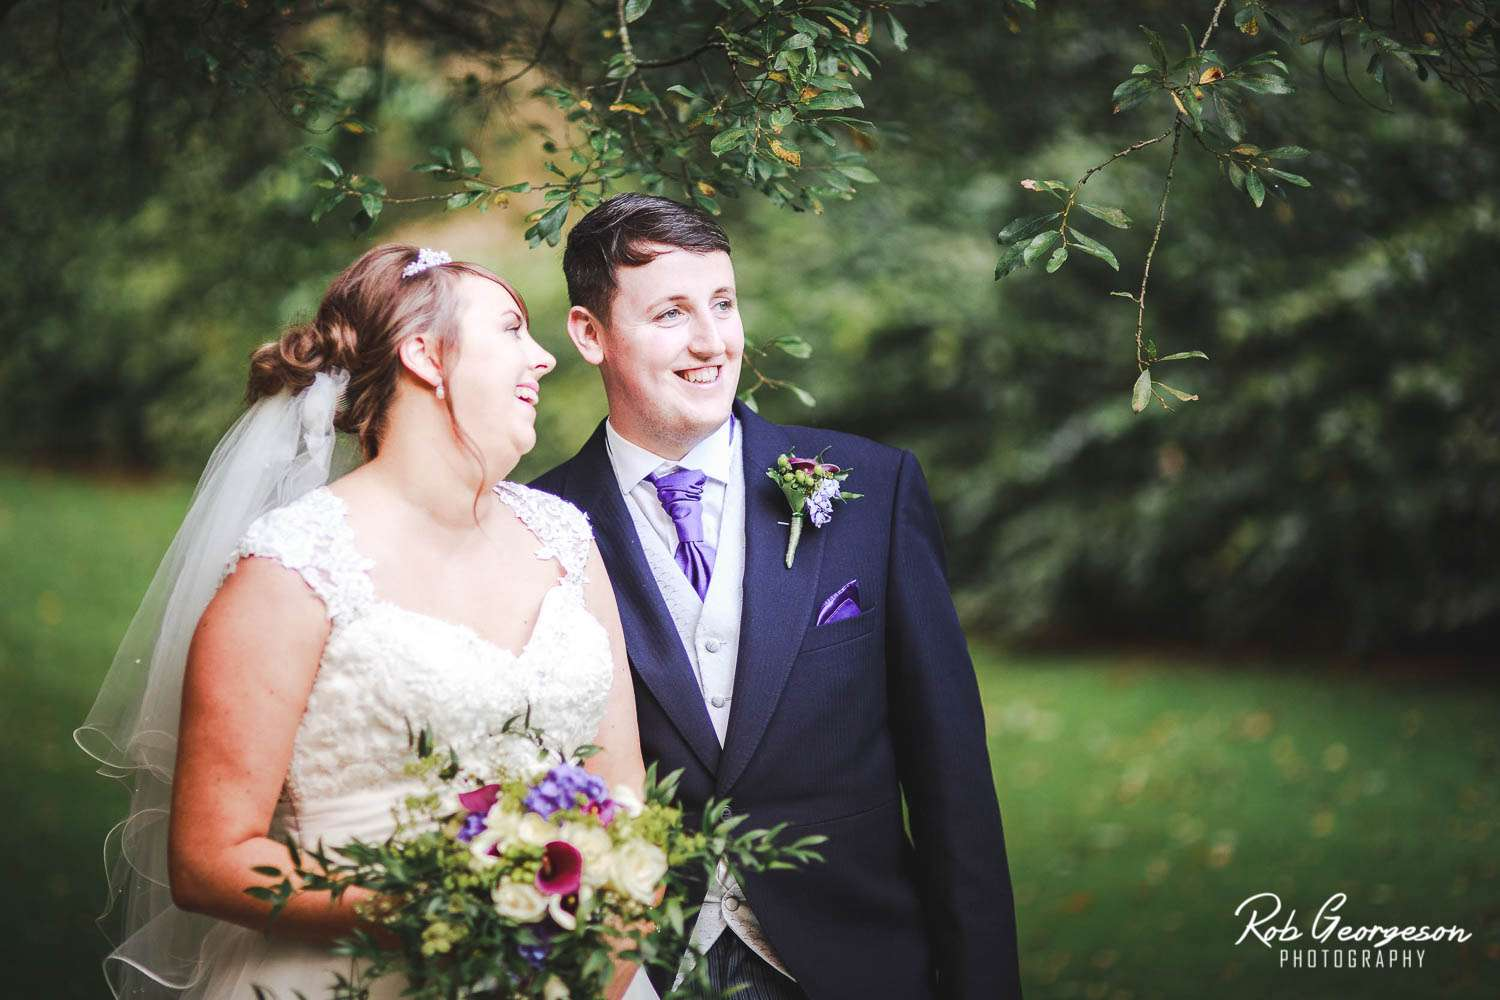 Mitton_Hall_Wedding_Photographer (36).jpg